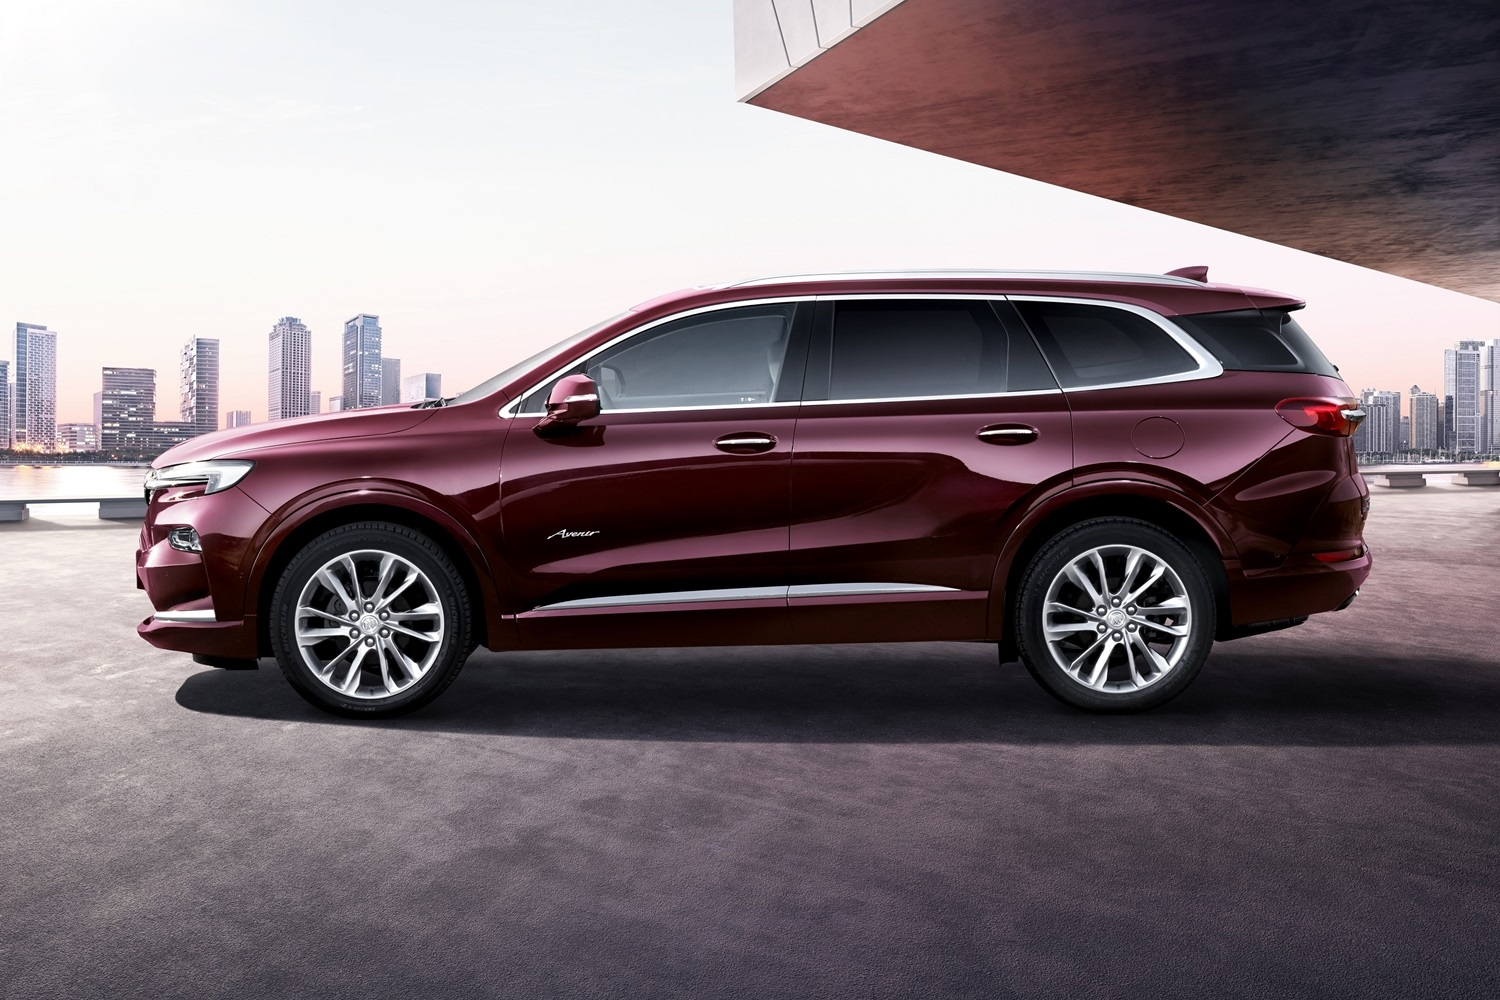 Gm Shows All-New China-Spec Buick Enclave Avenir | Gm Authority New 2022 Buick Enclave Cost, Build, Bolt Pattern